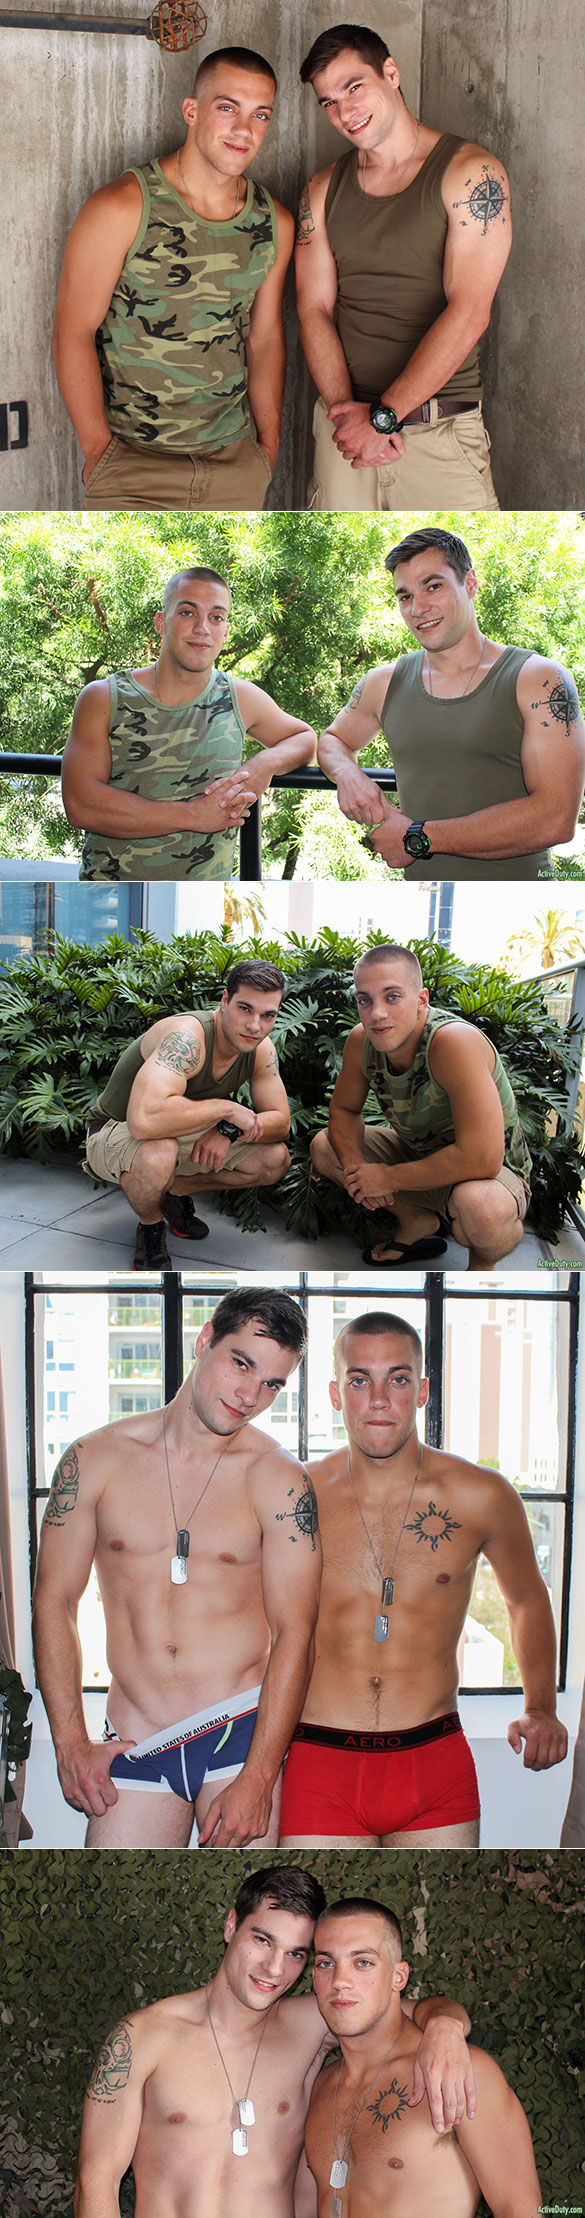 ActiveDuty: Princeton Price and Scotty Dickenson bang each other bareback